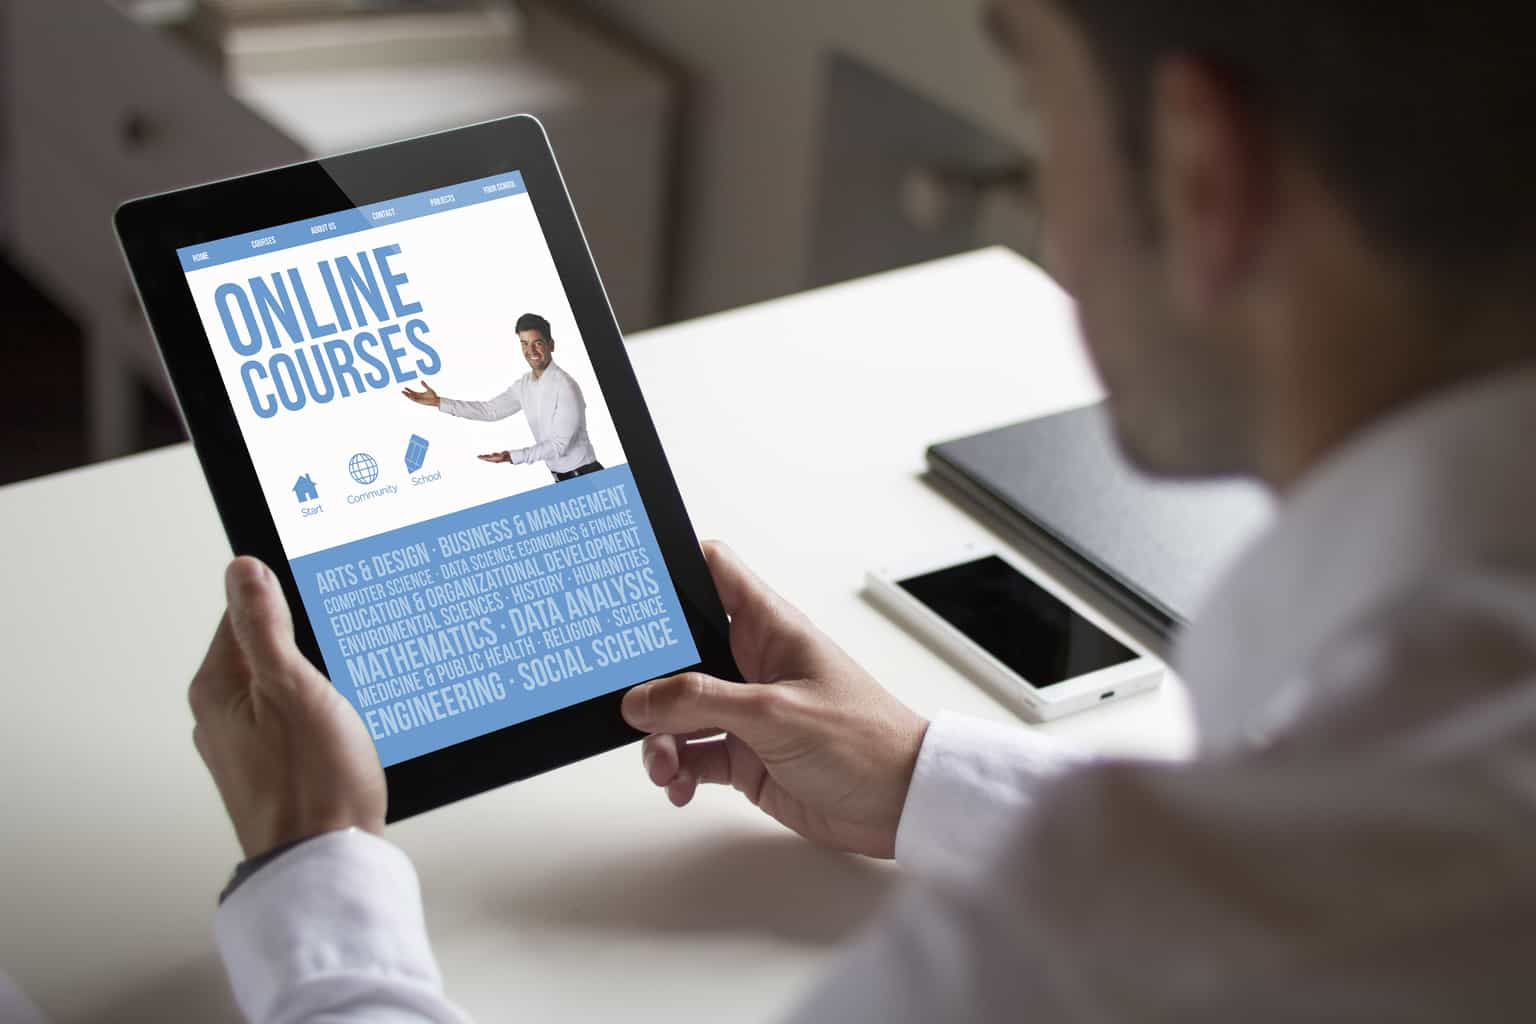 businessman online courses with tablet pc